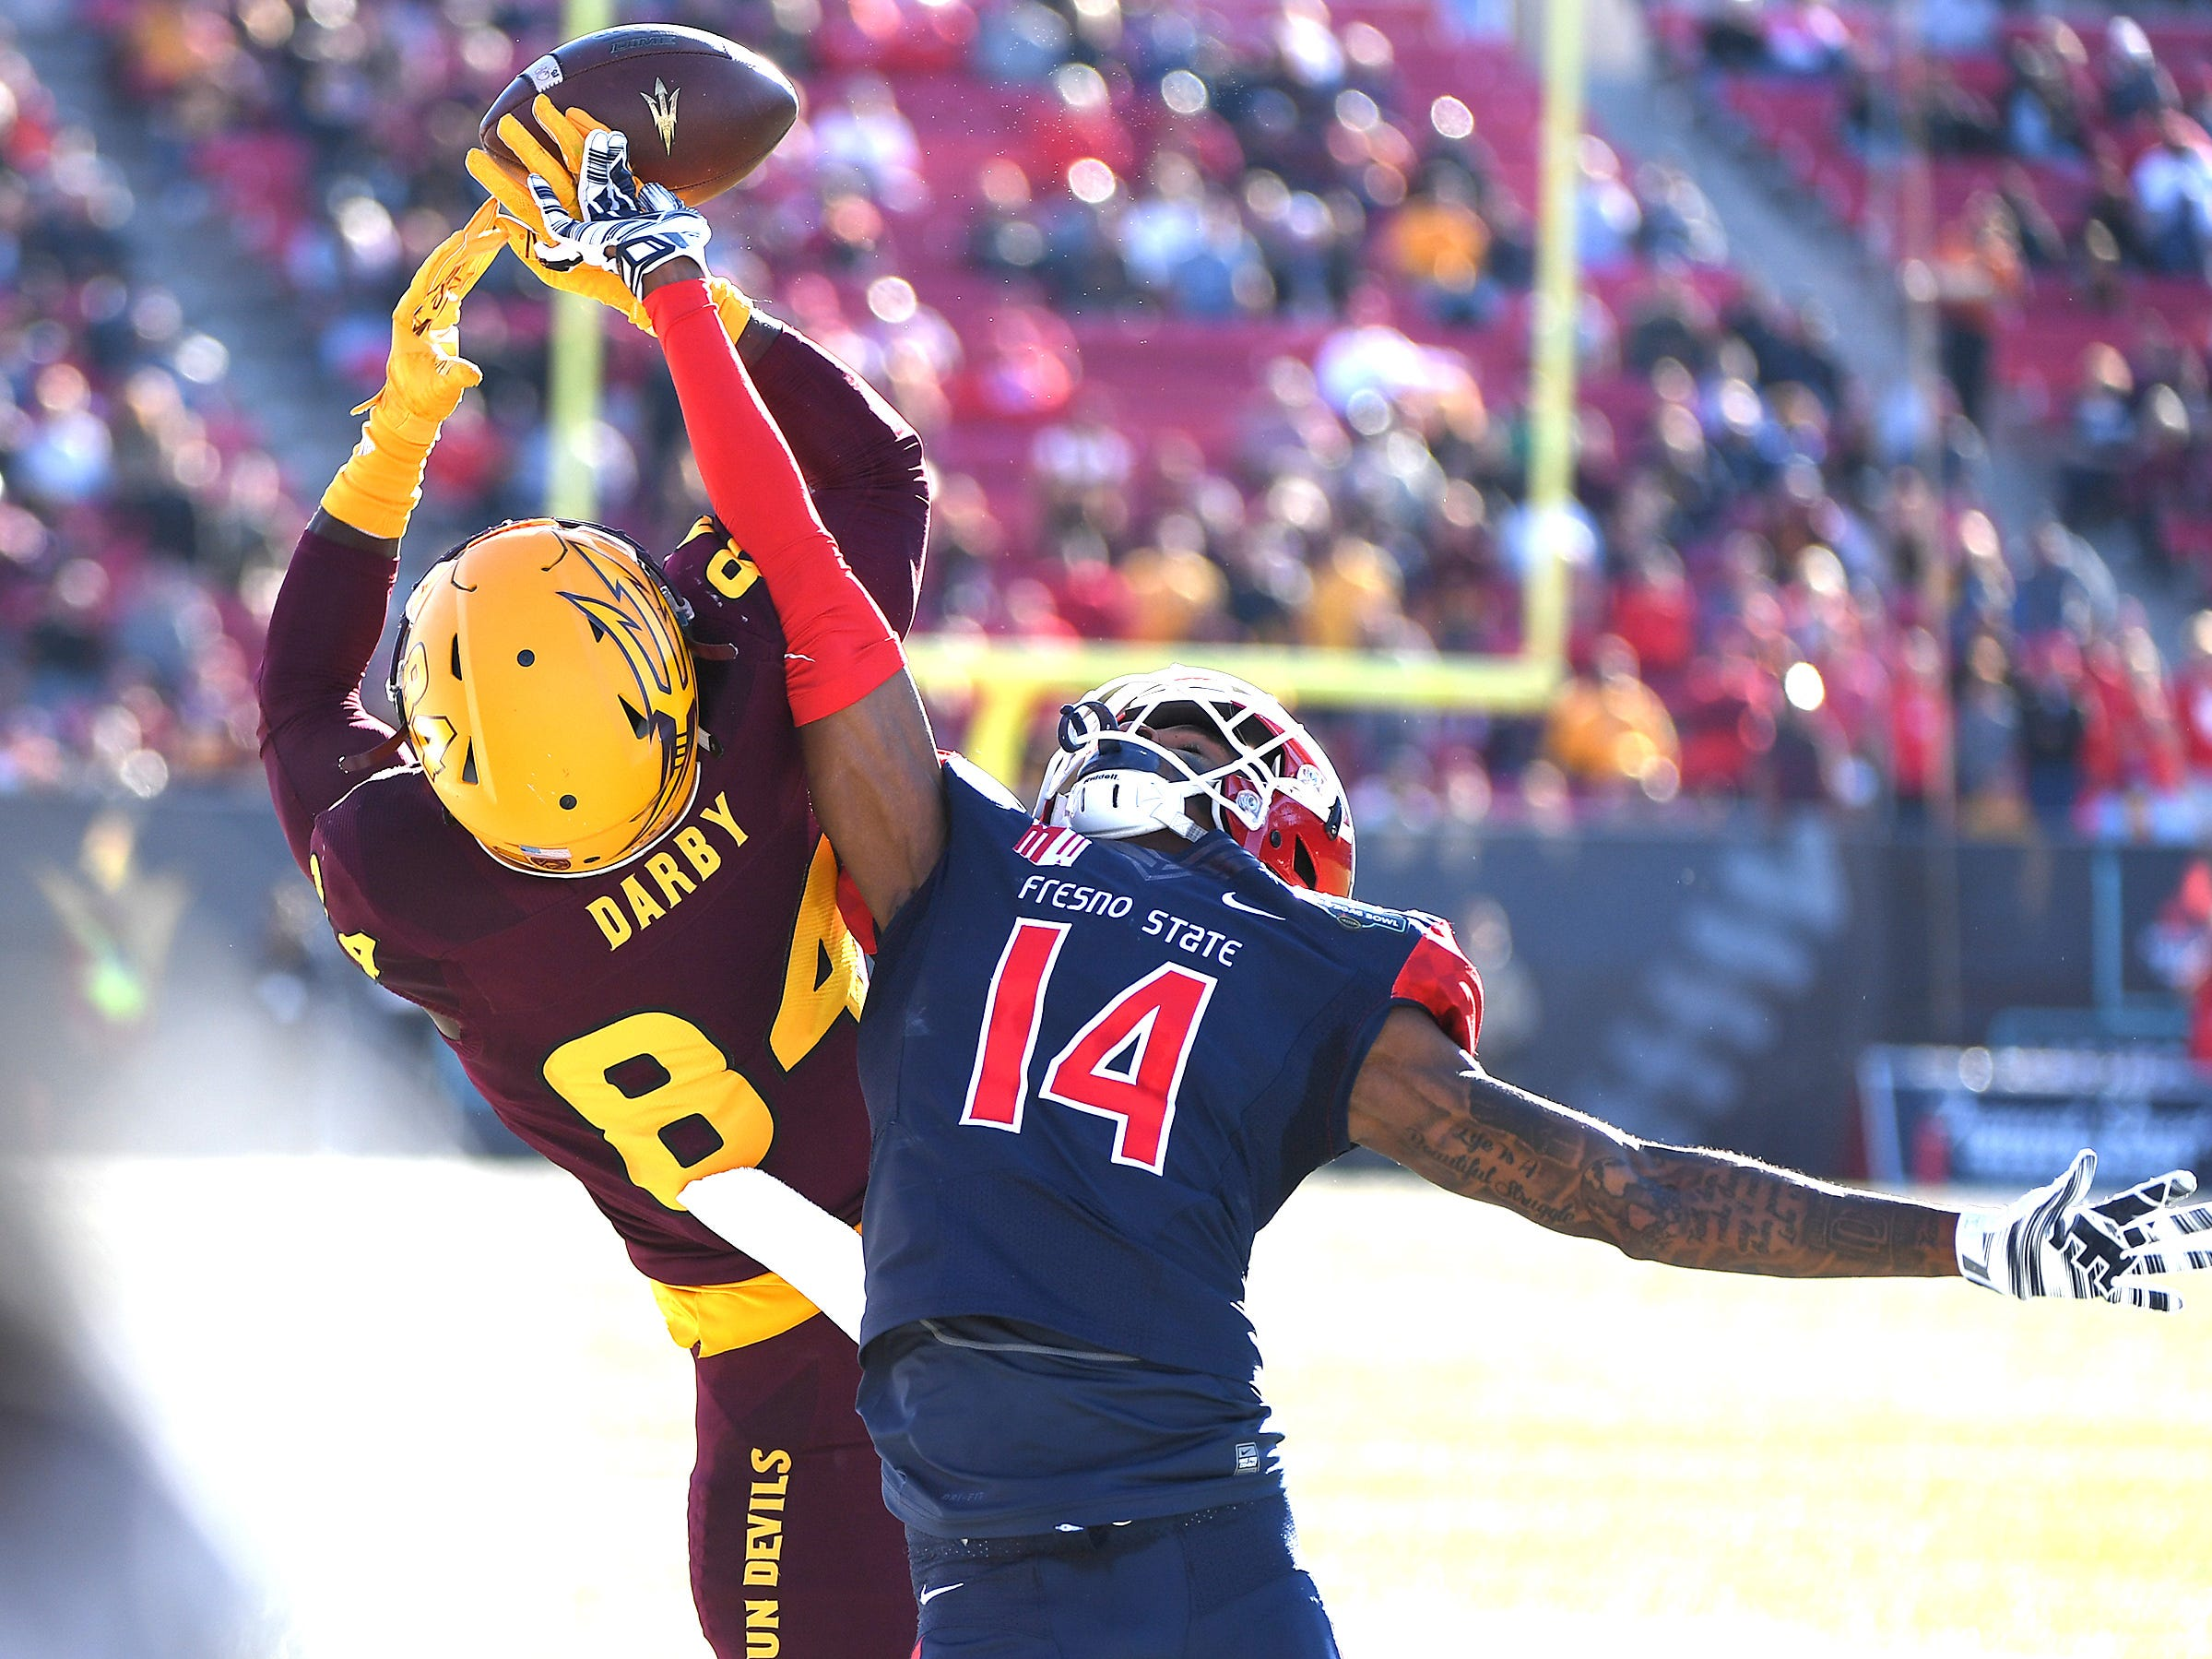 Fresno State Bulldogs defensive back Jaron Bryant (14) breaks up a pass intended for Arizona State Sun Devils wide receiver Frank Darby (84) during the Las Vegas Bowl.